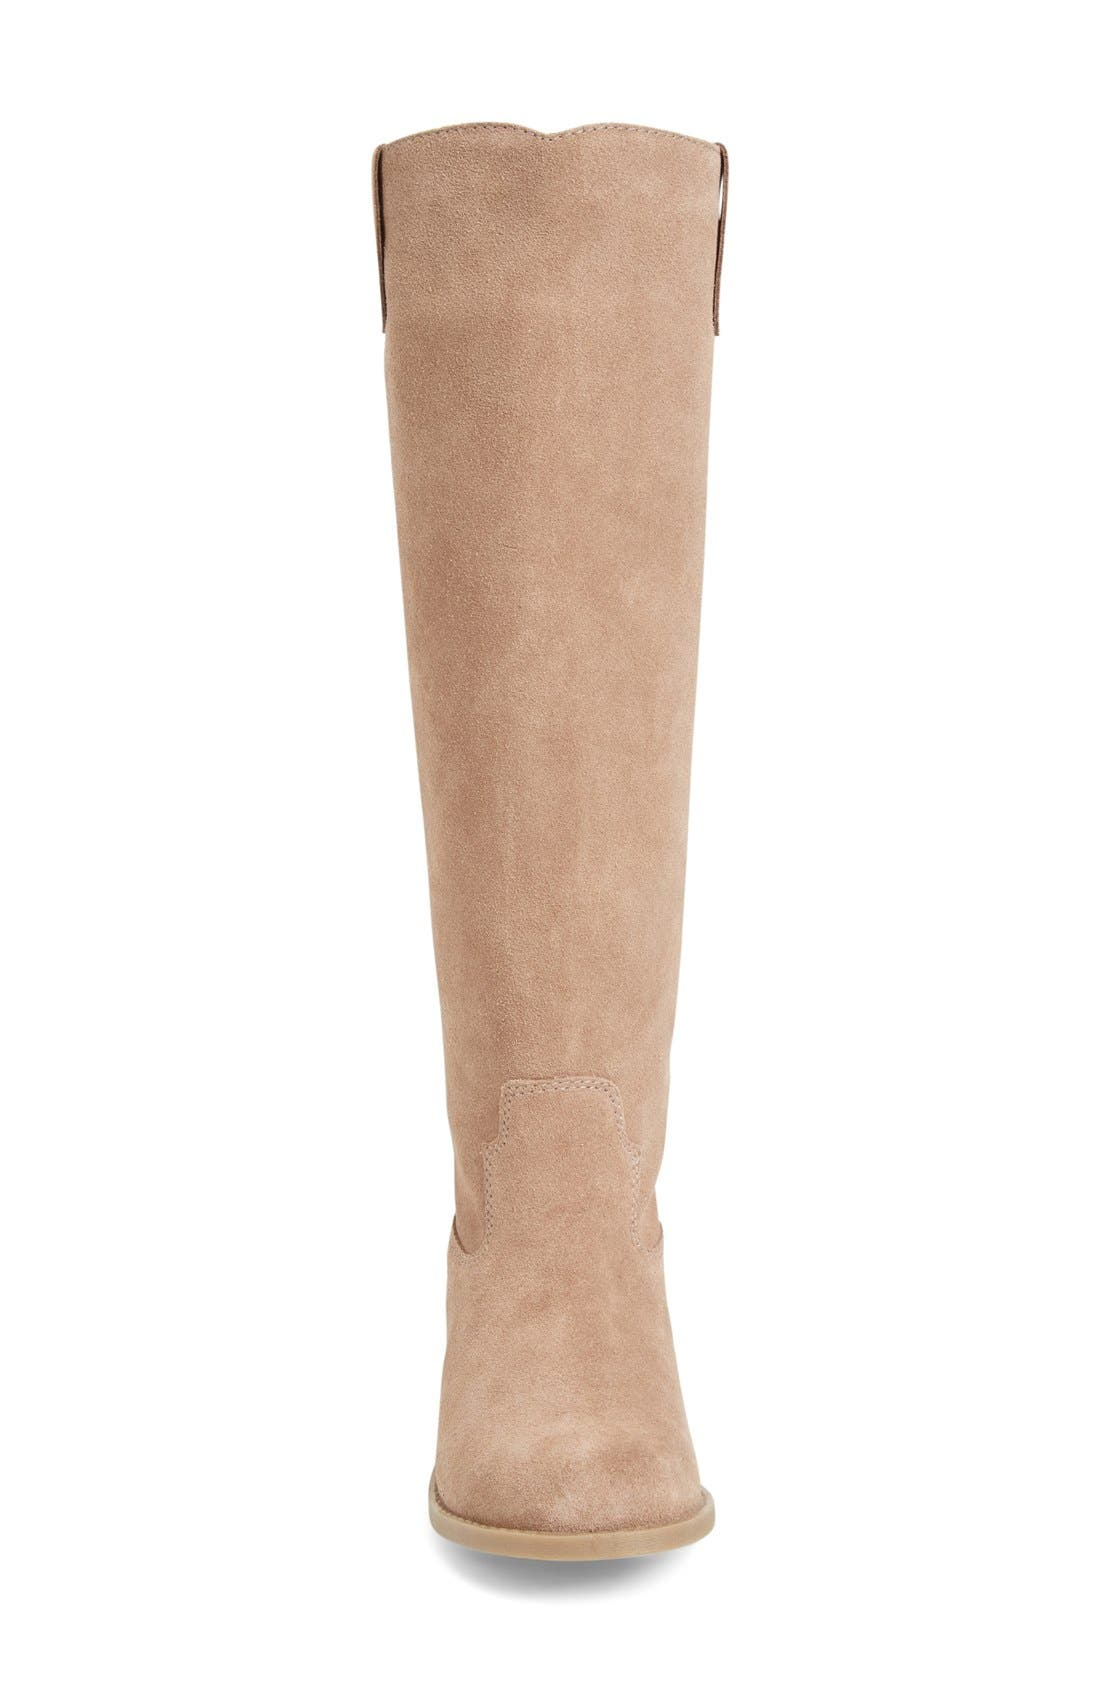 Alternate Image 3  - Sole Society Hawn Knee High Boot (Women)